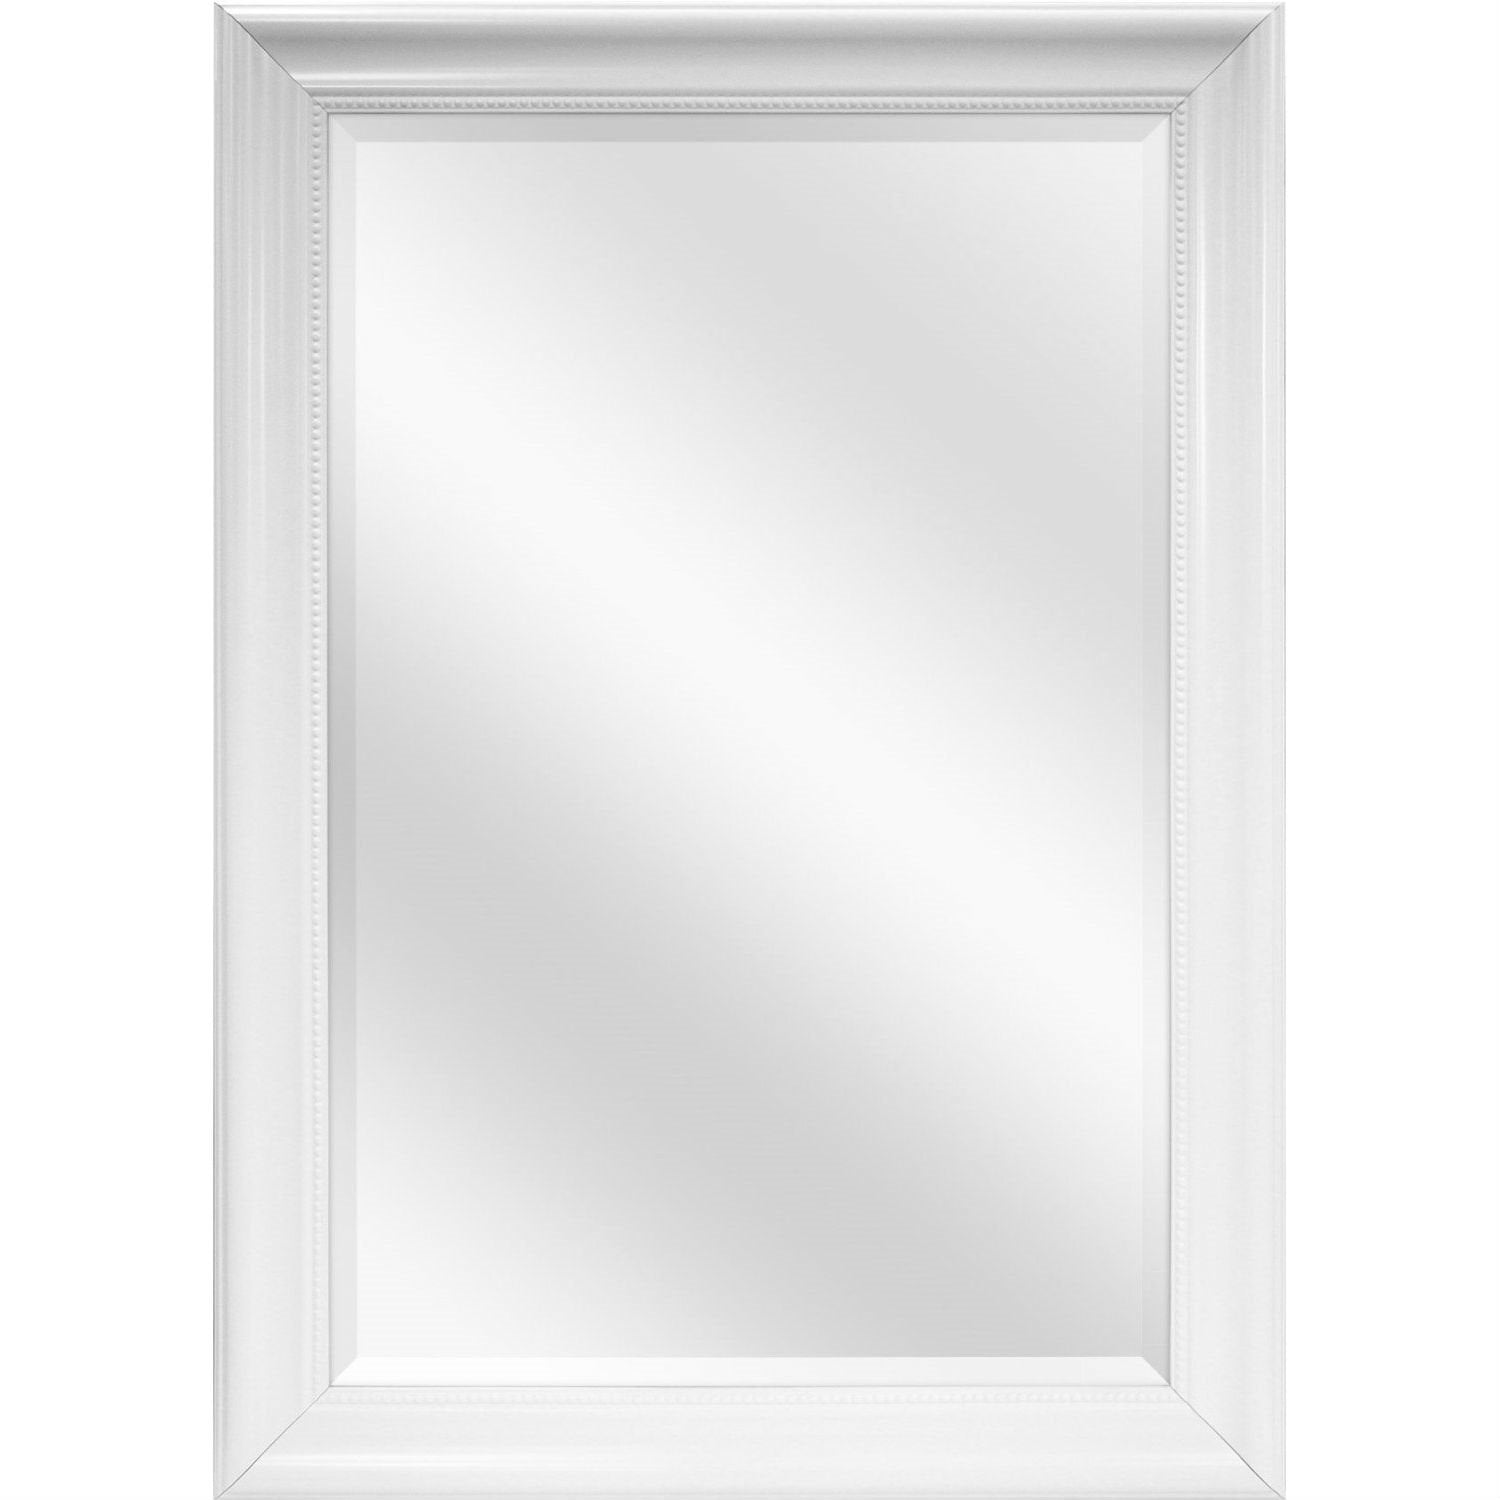 Large Rectangular Bathroom Wall Hanging Mirror with White Frame - 42 x 30 inch